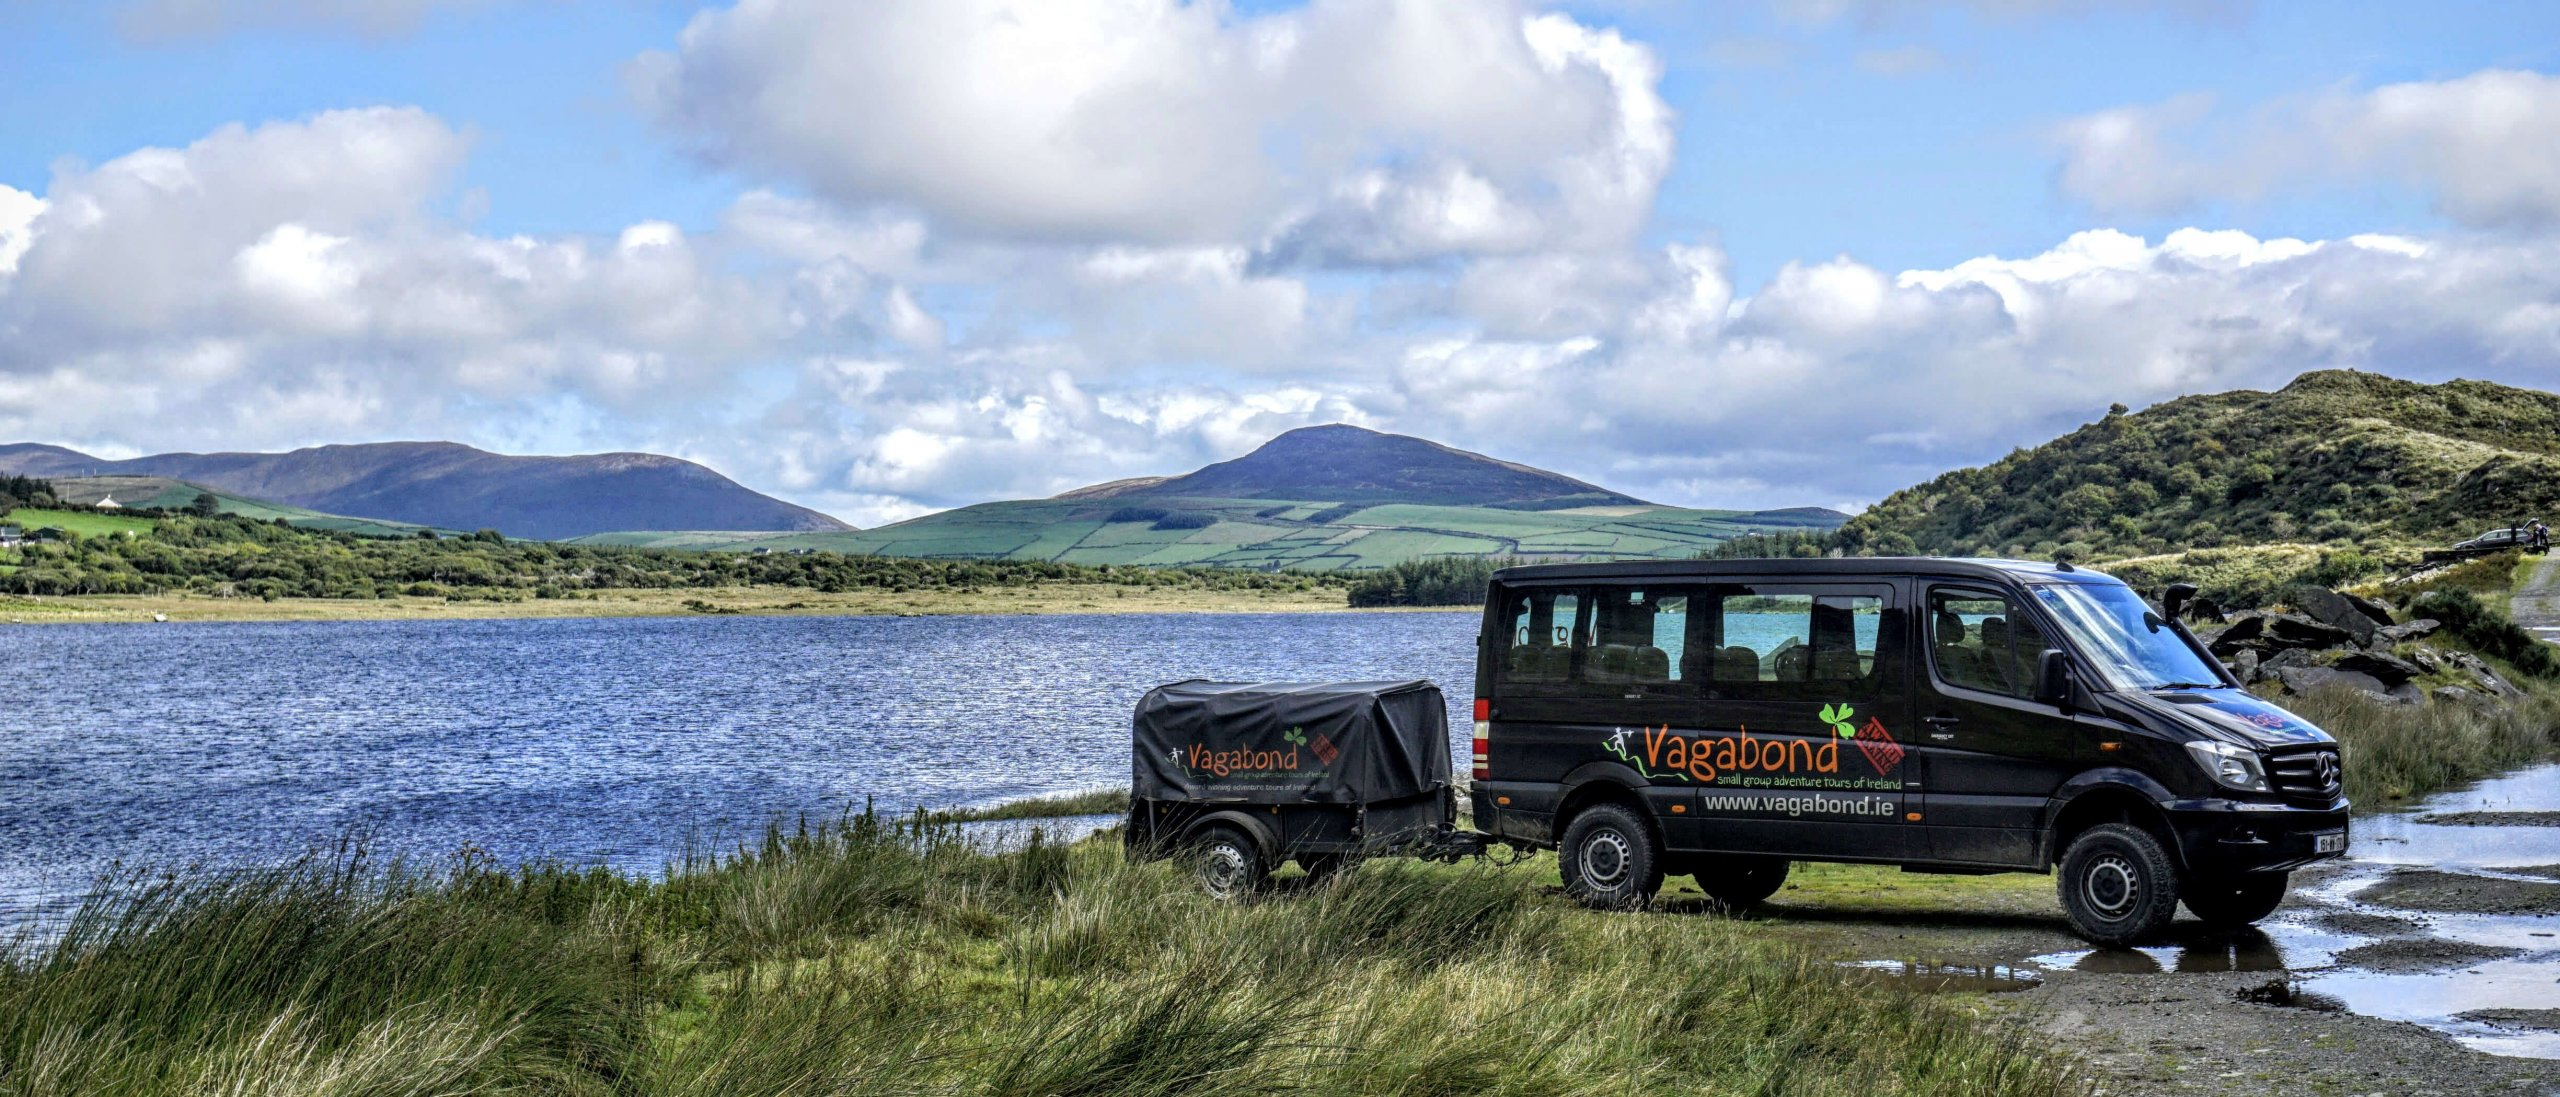 VagaTron tour vehicle at Lough Annascaul on the Dingle peninsula